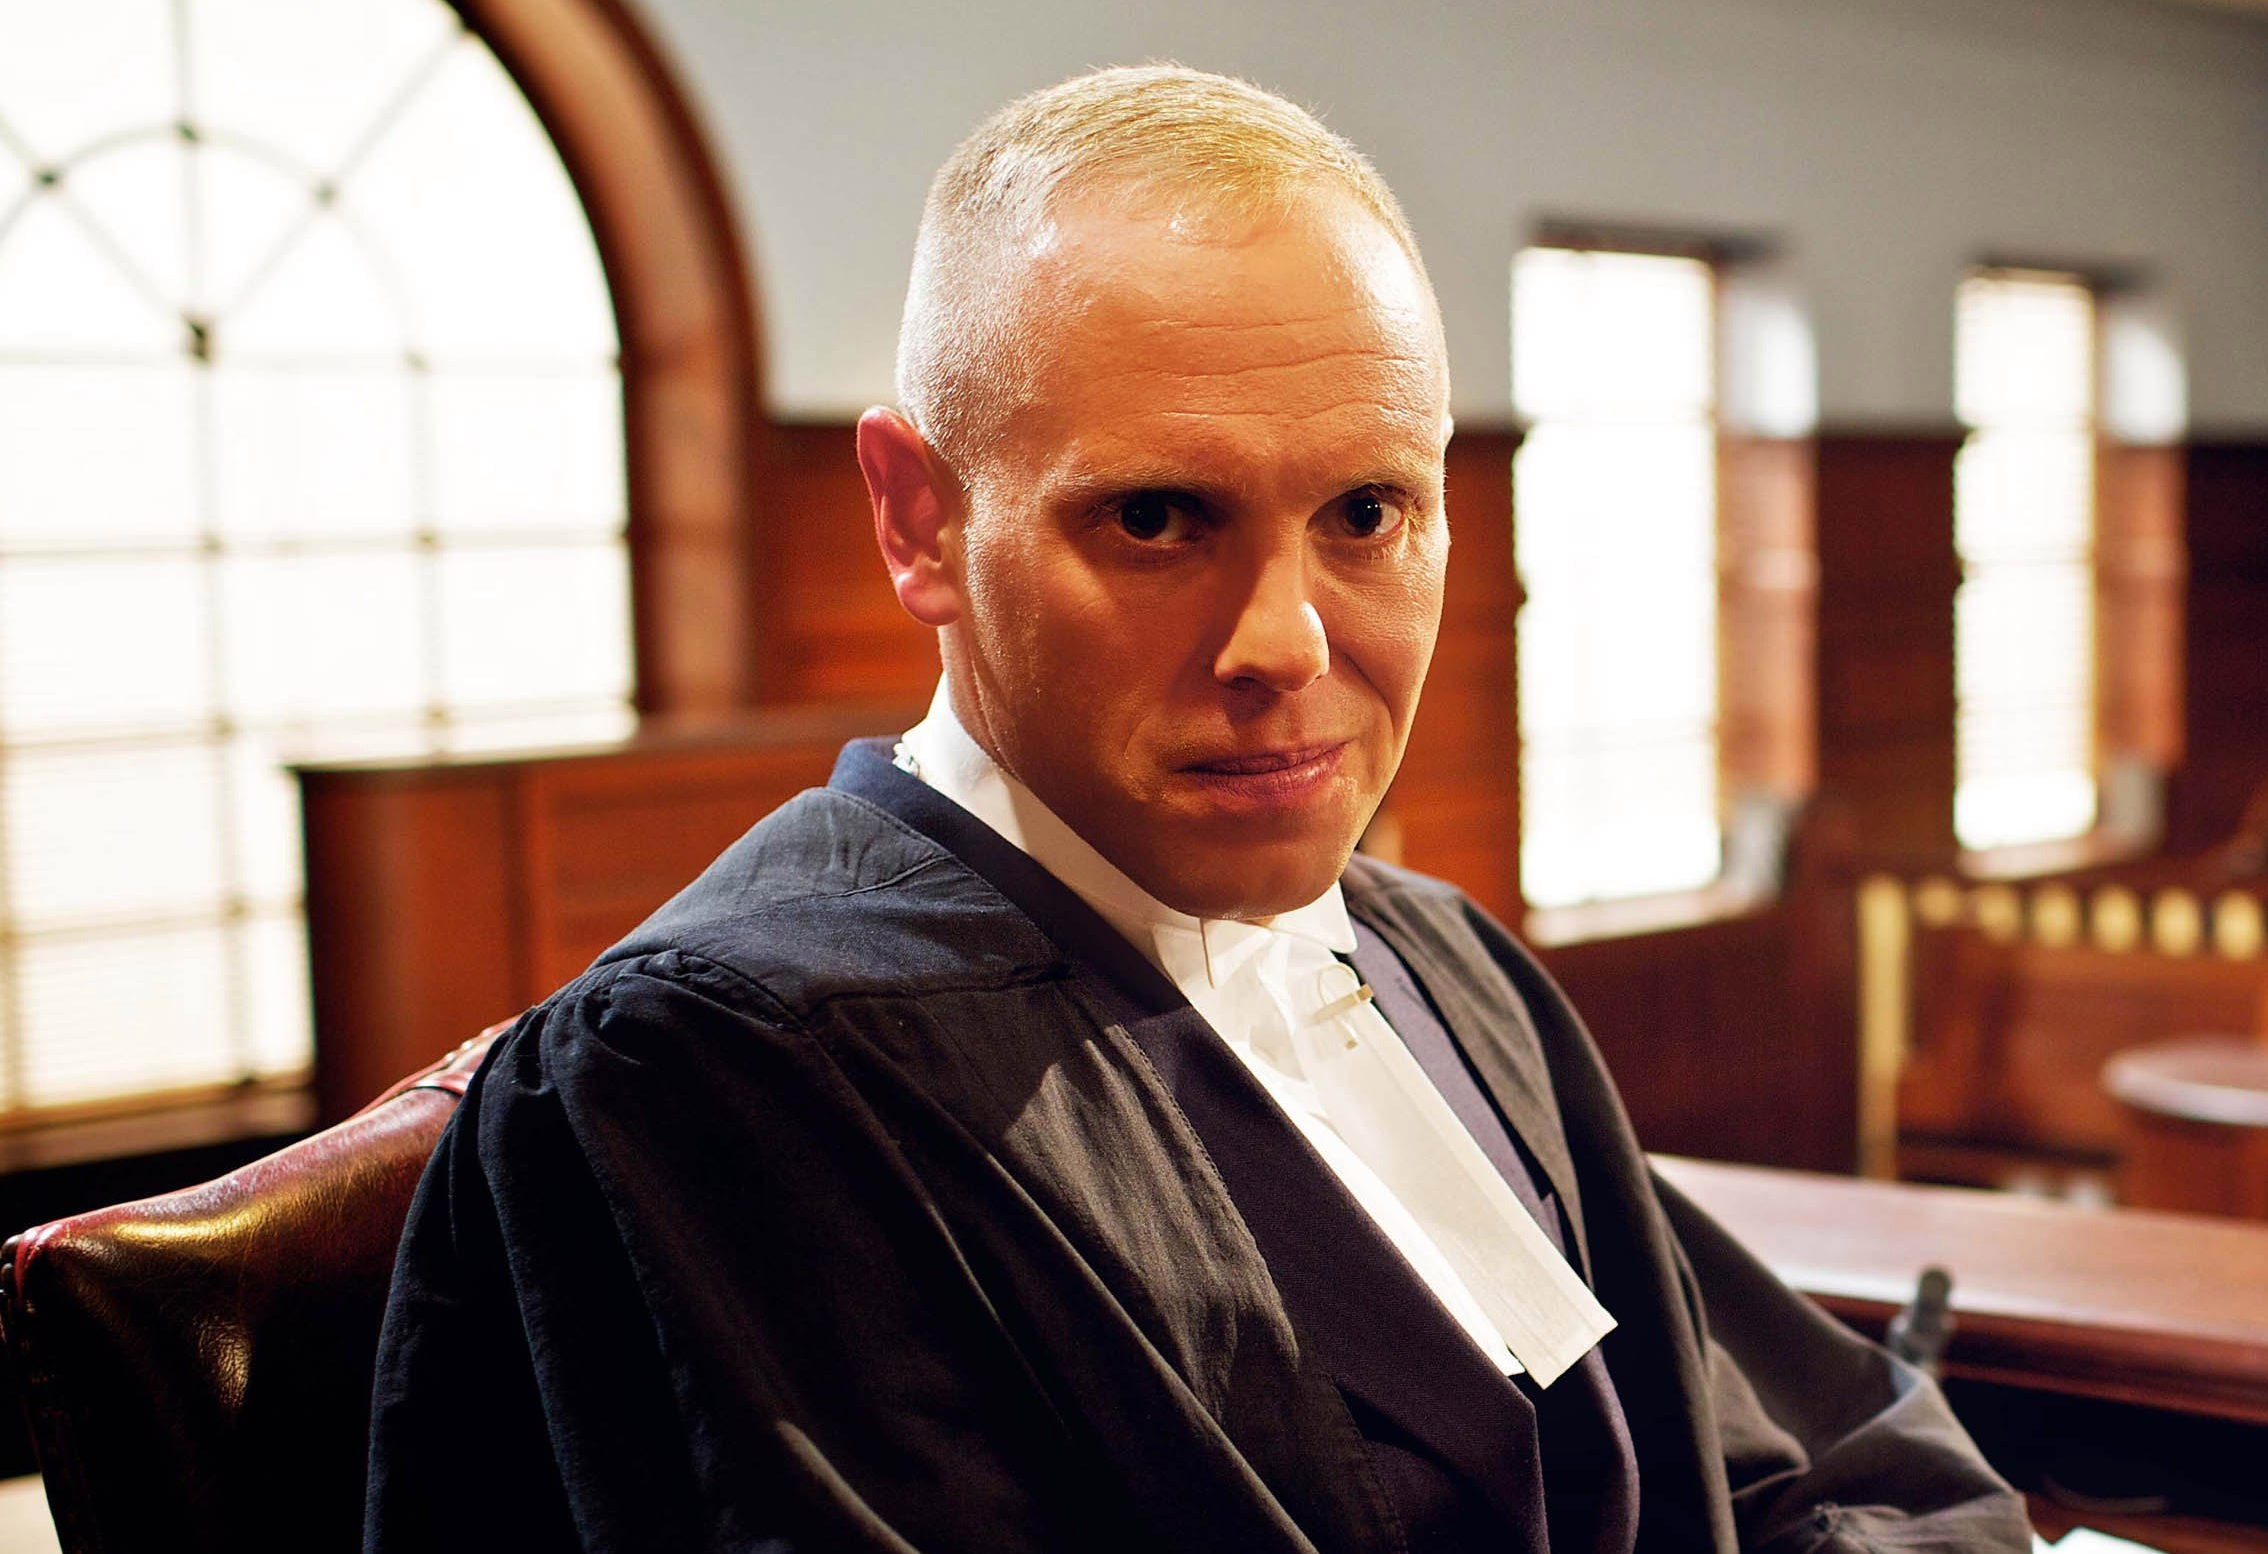 Judge Rinder helps a reader look at his next move in a divorce